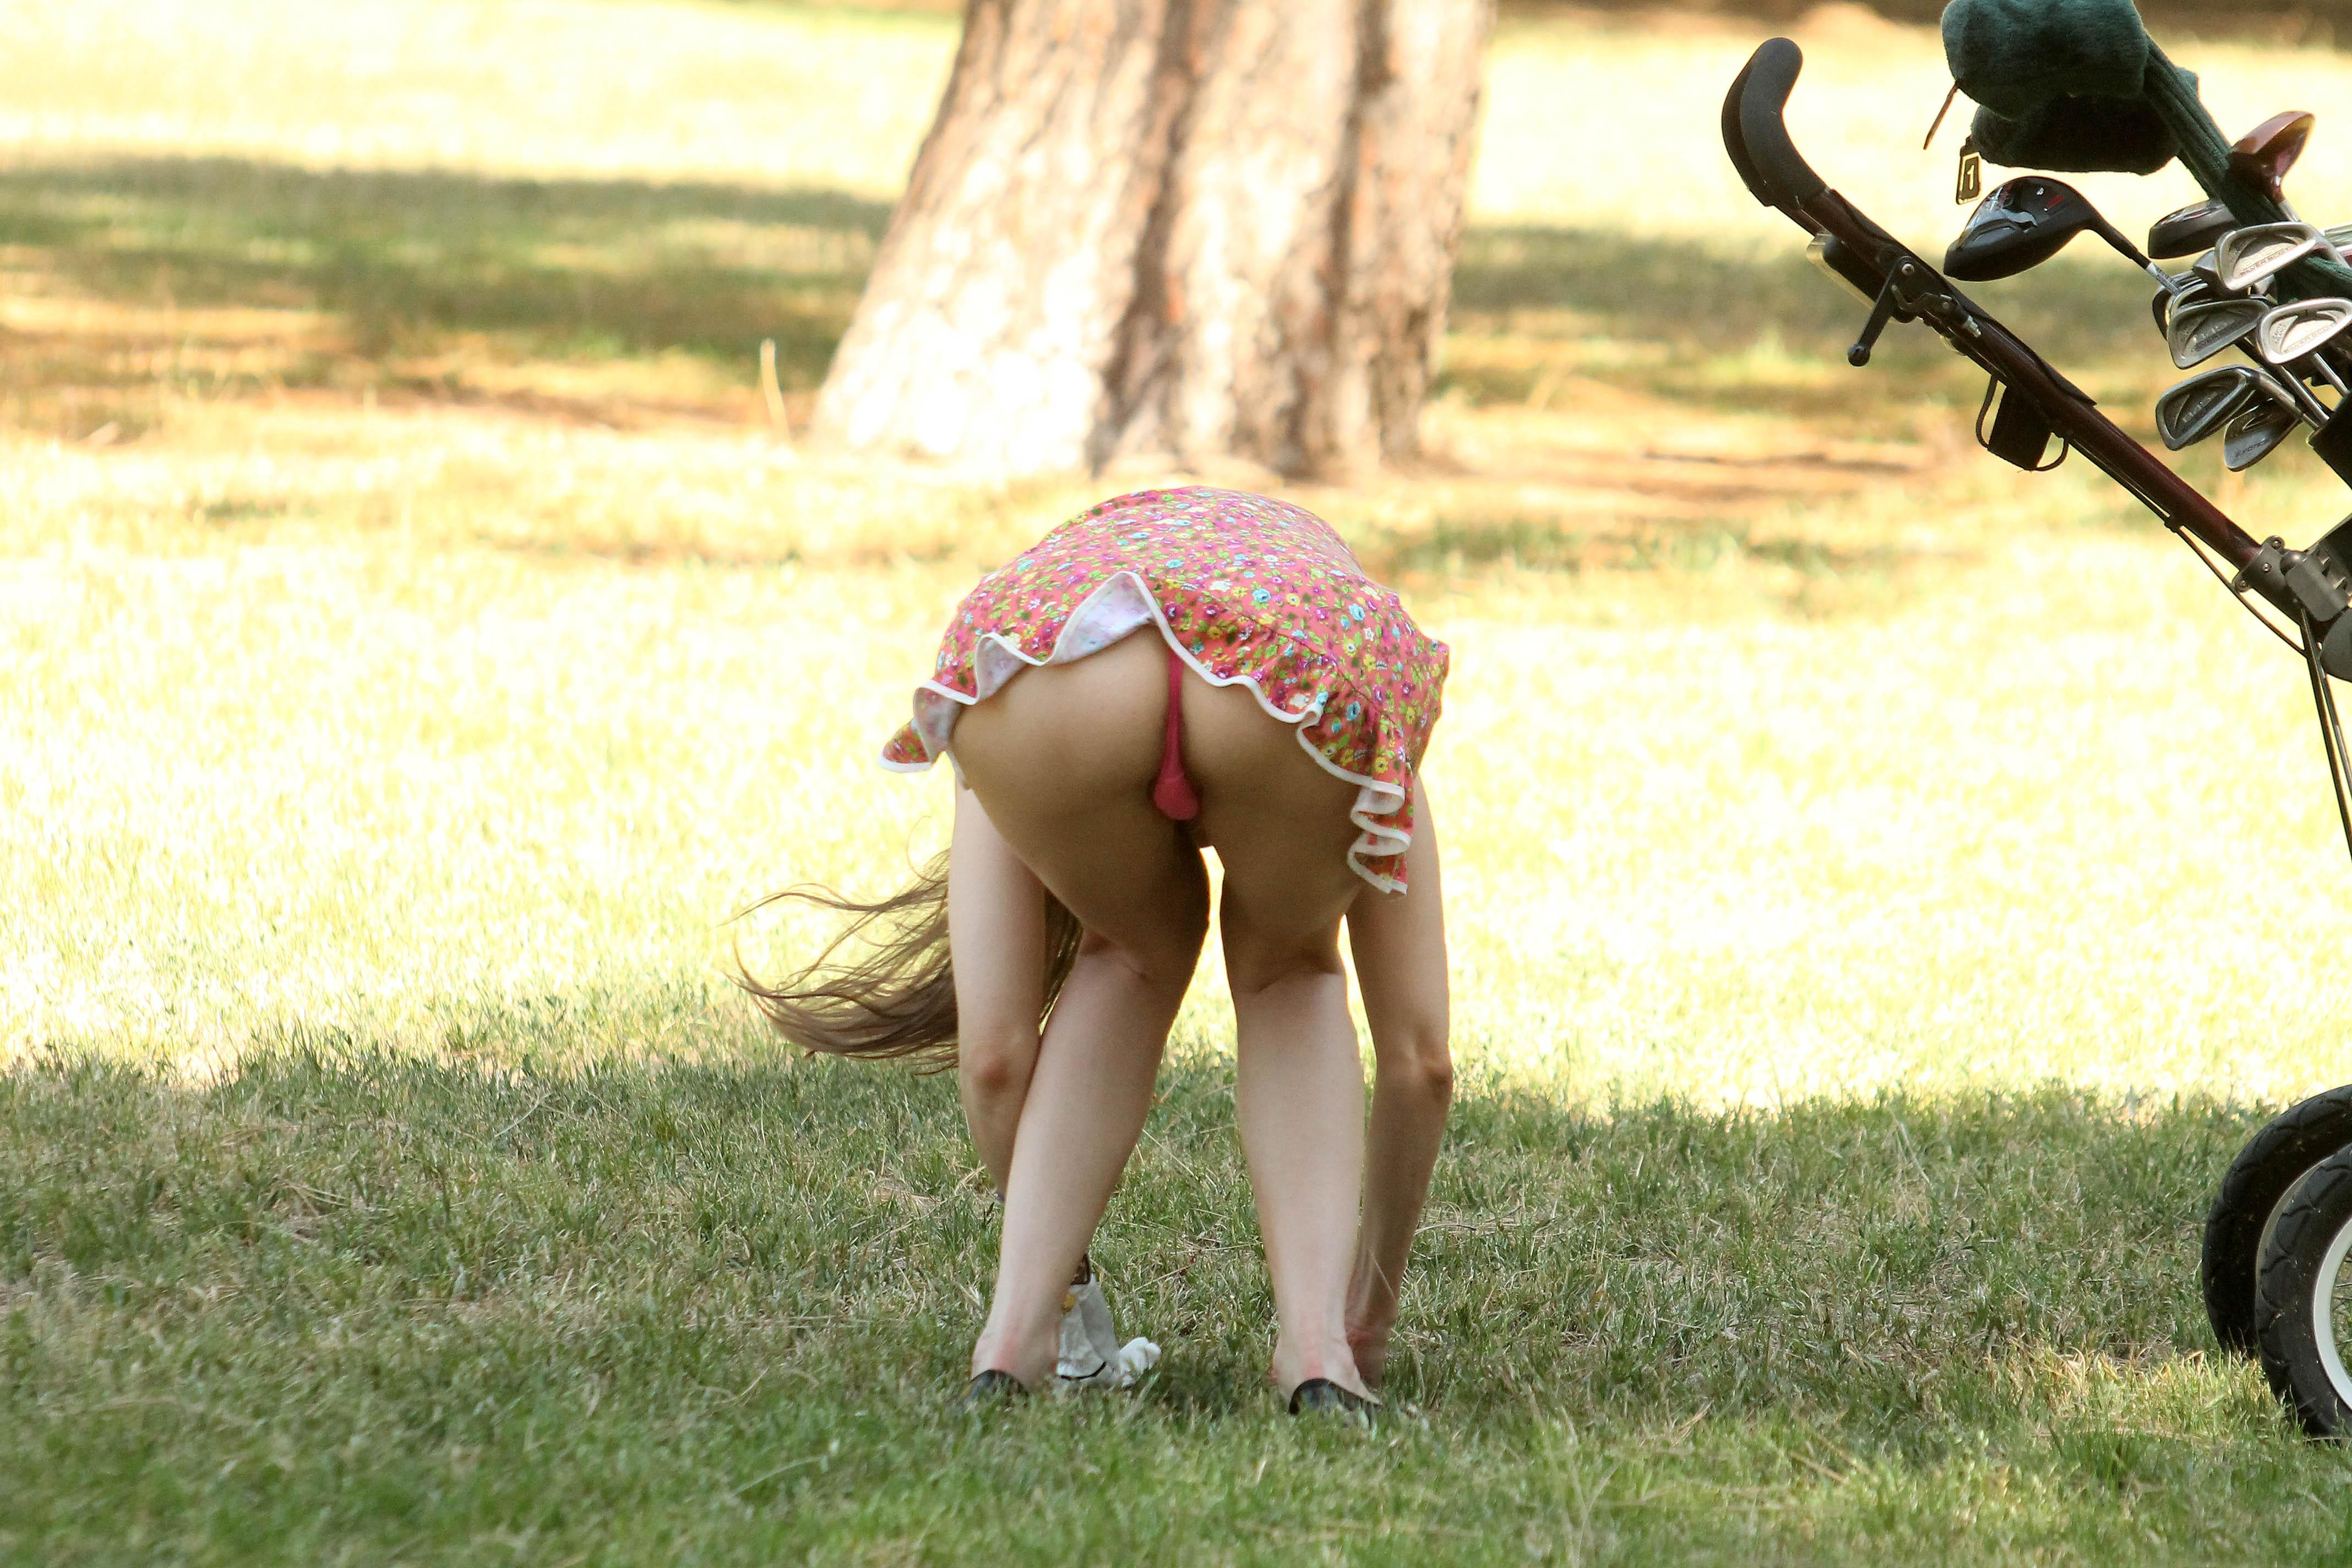 alicia-arden-ass-flash-pink-thong-panties-upskirt-golf-swing-14